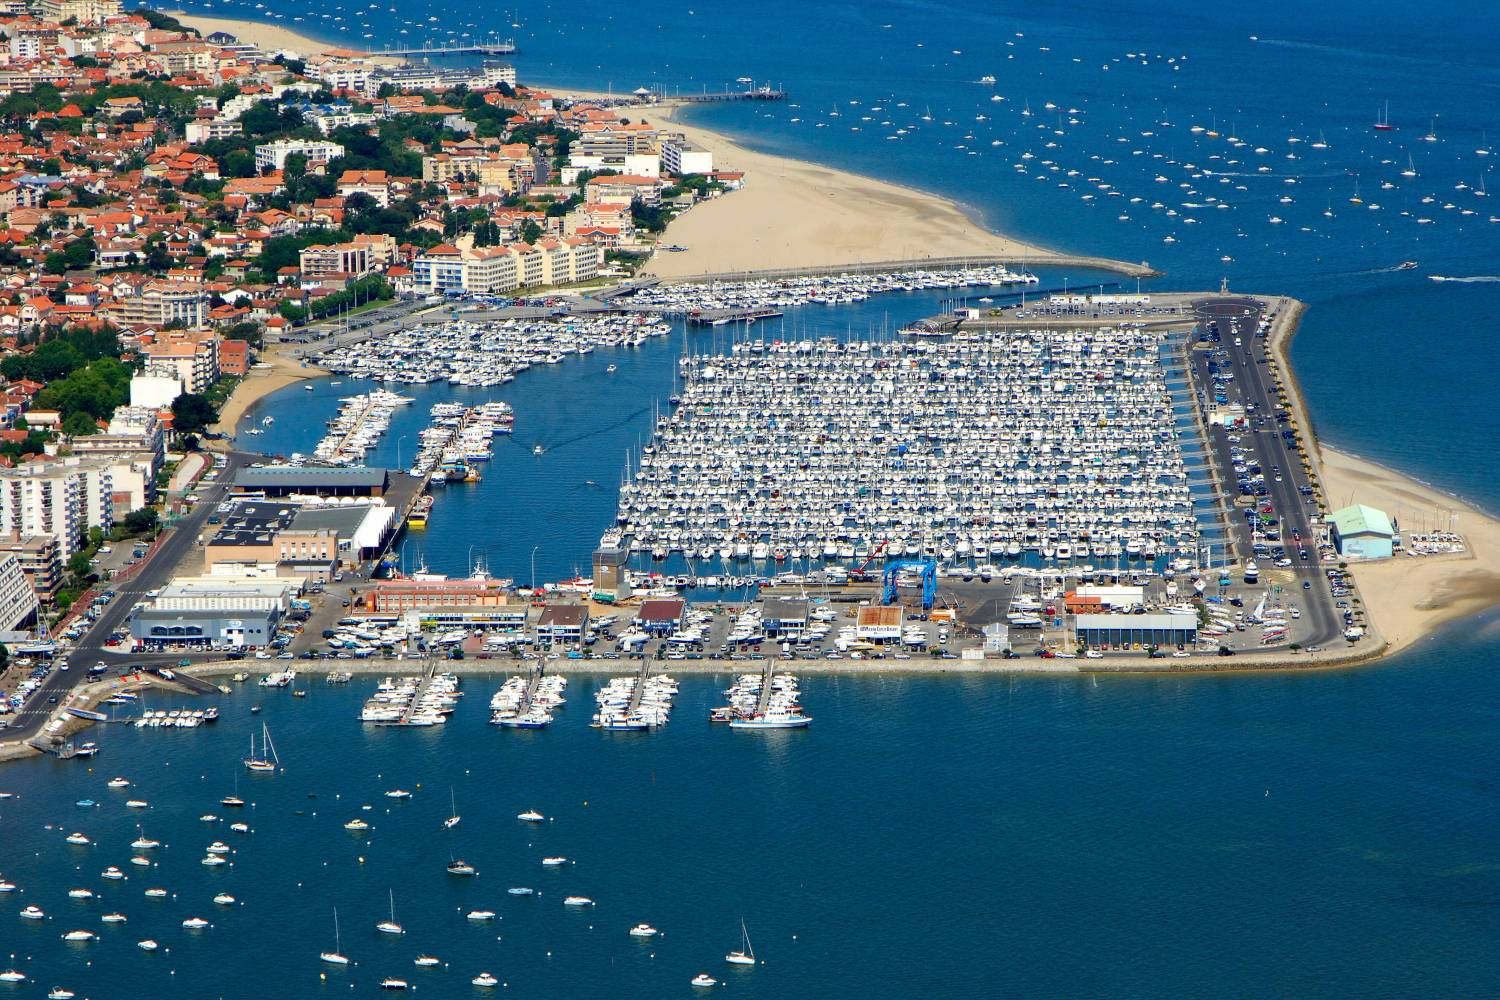 Enjoy a private chef after an amazing day in Arcachon - Take a Chef